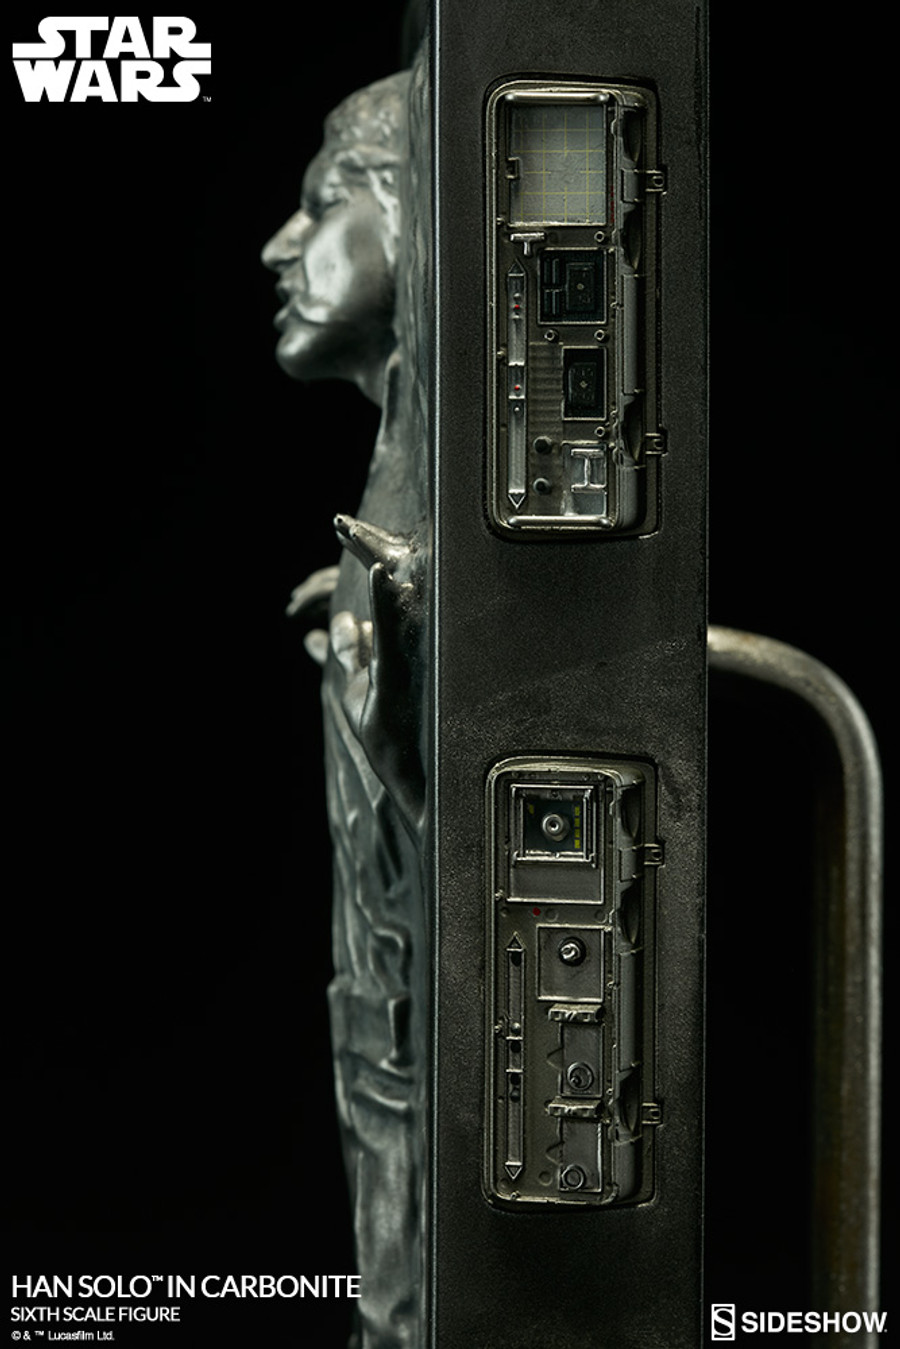 Sideshow - Star Wars - Han Solo in Carbonite